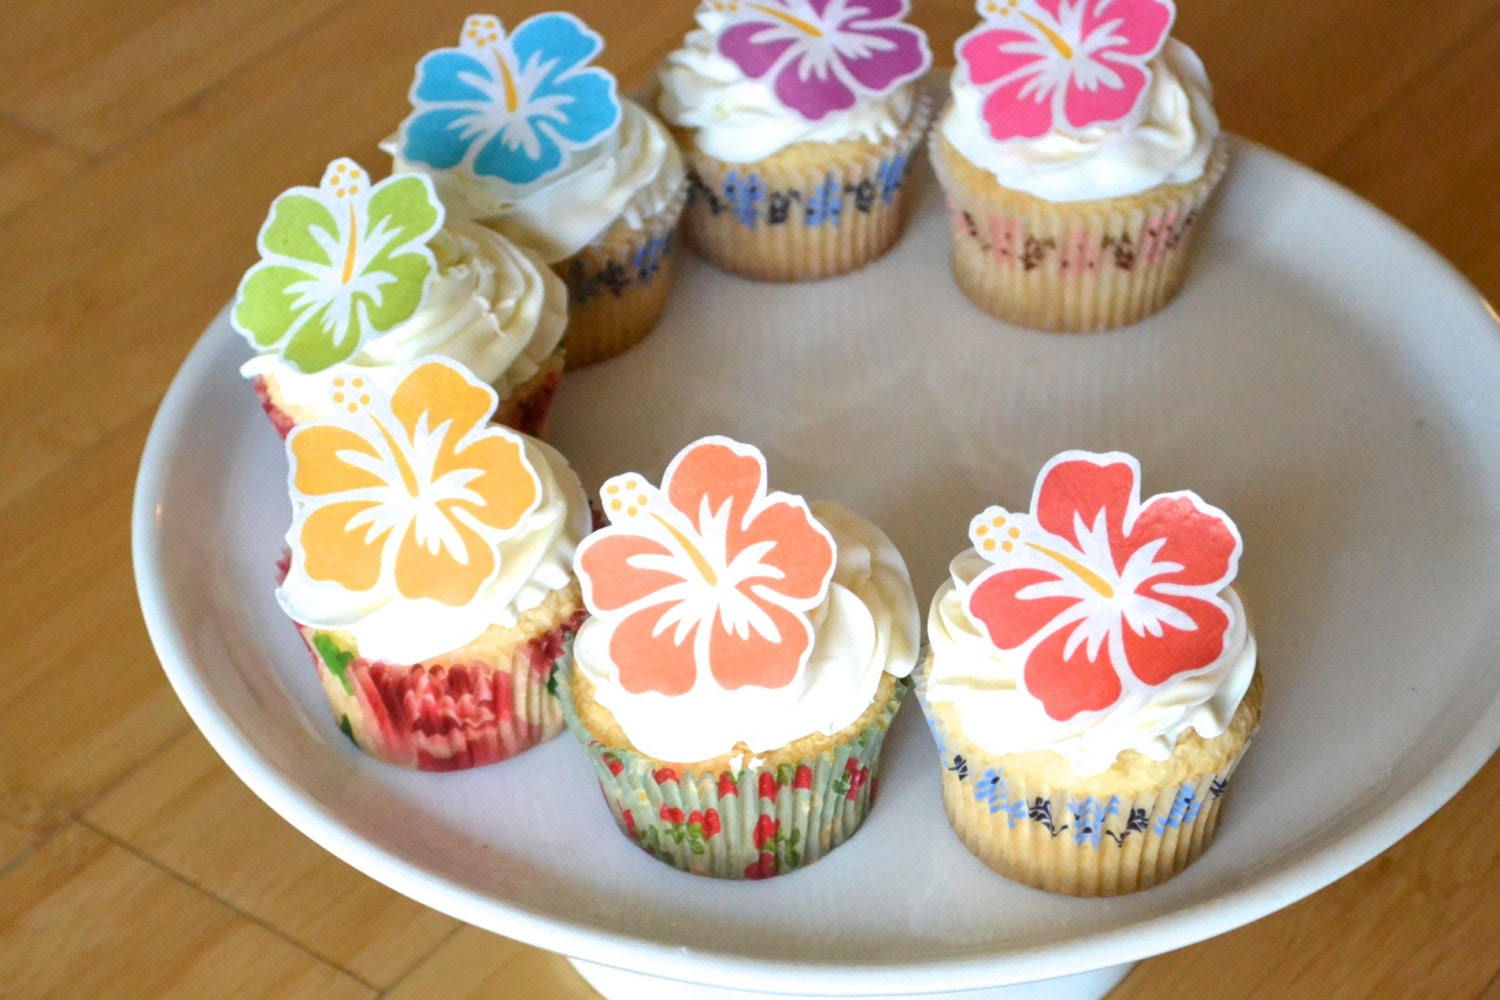 Edible hawaiian tropical hibiscus flowers cake cupcake toppers edible hawaiian tropical hibiscus flowers cake cupcake toppers food decorations izmirmasajfo Image collections